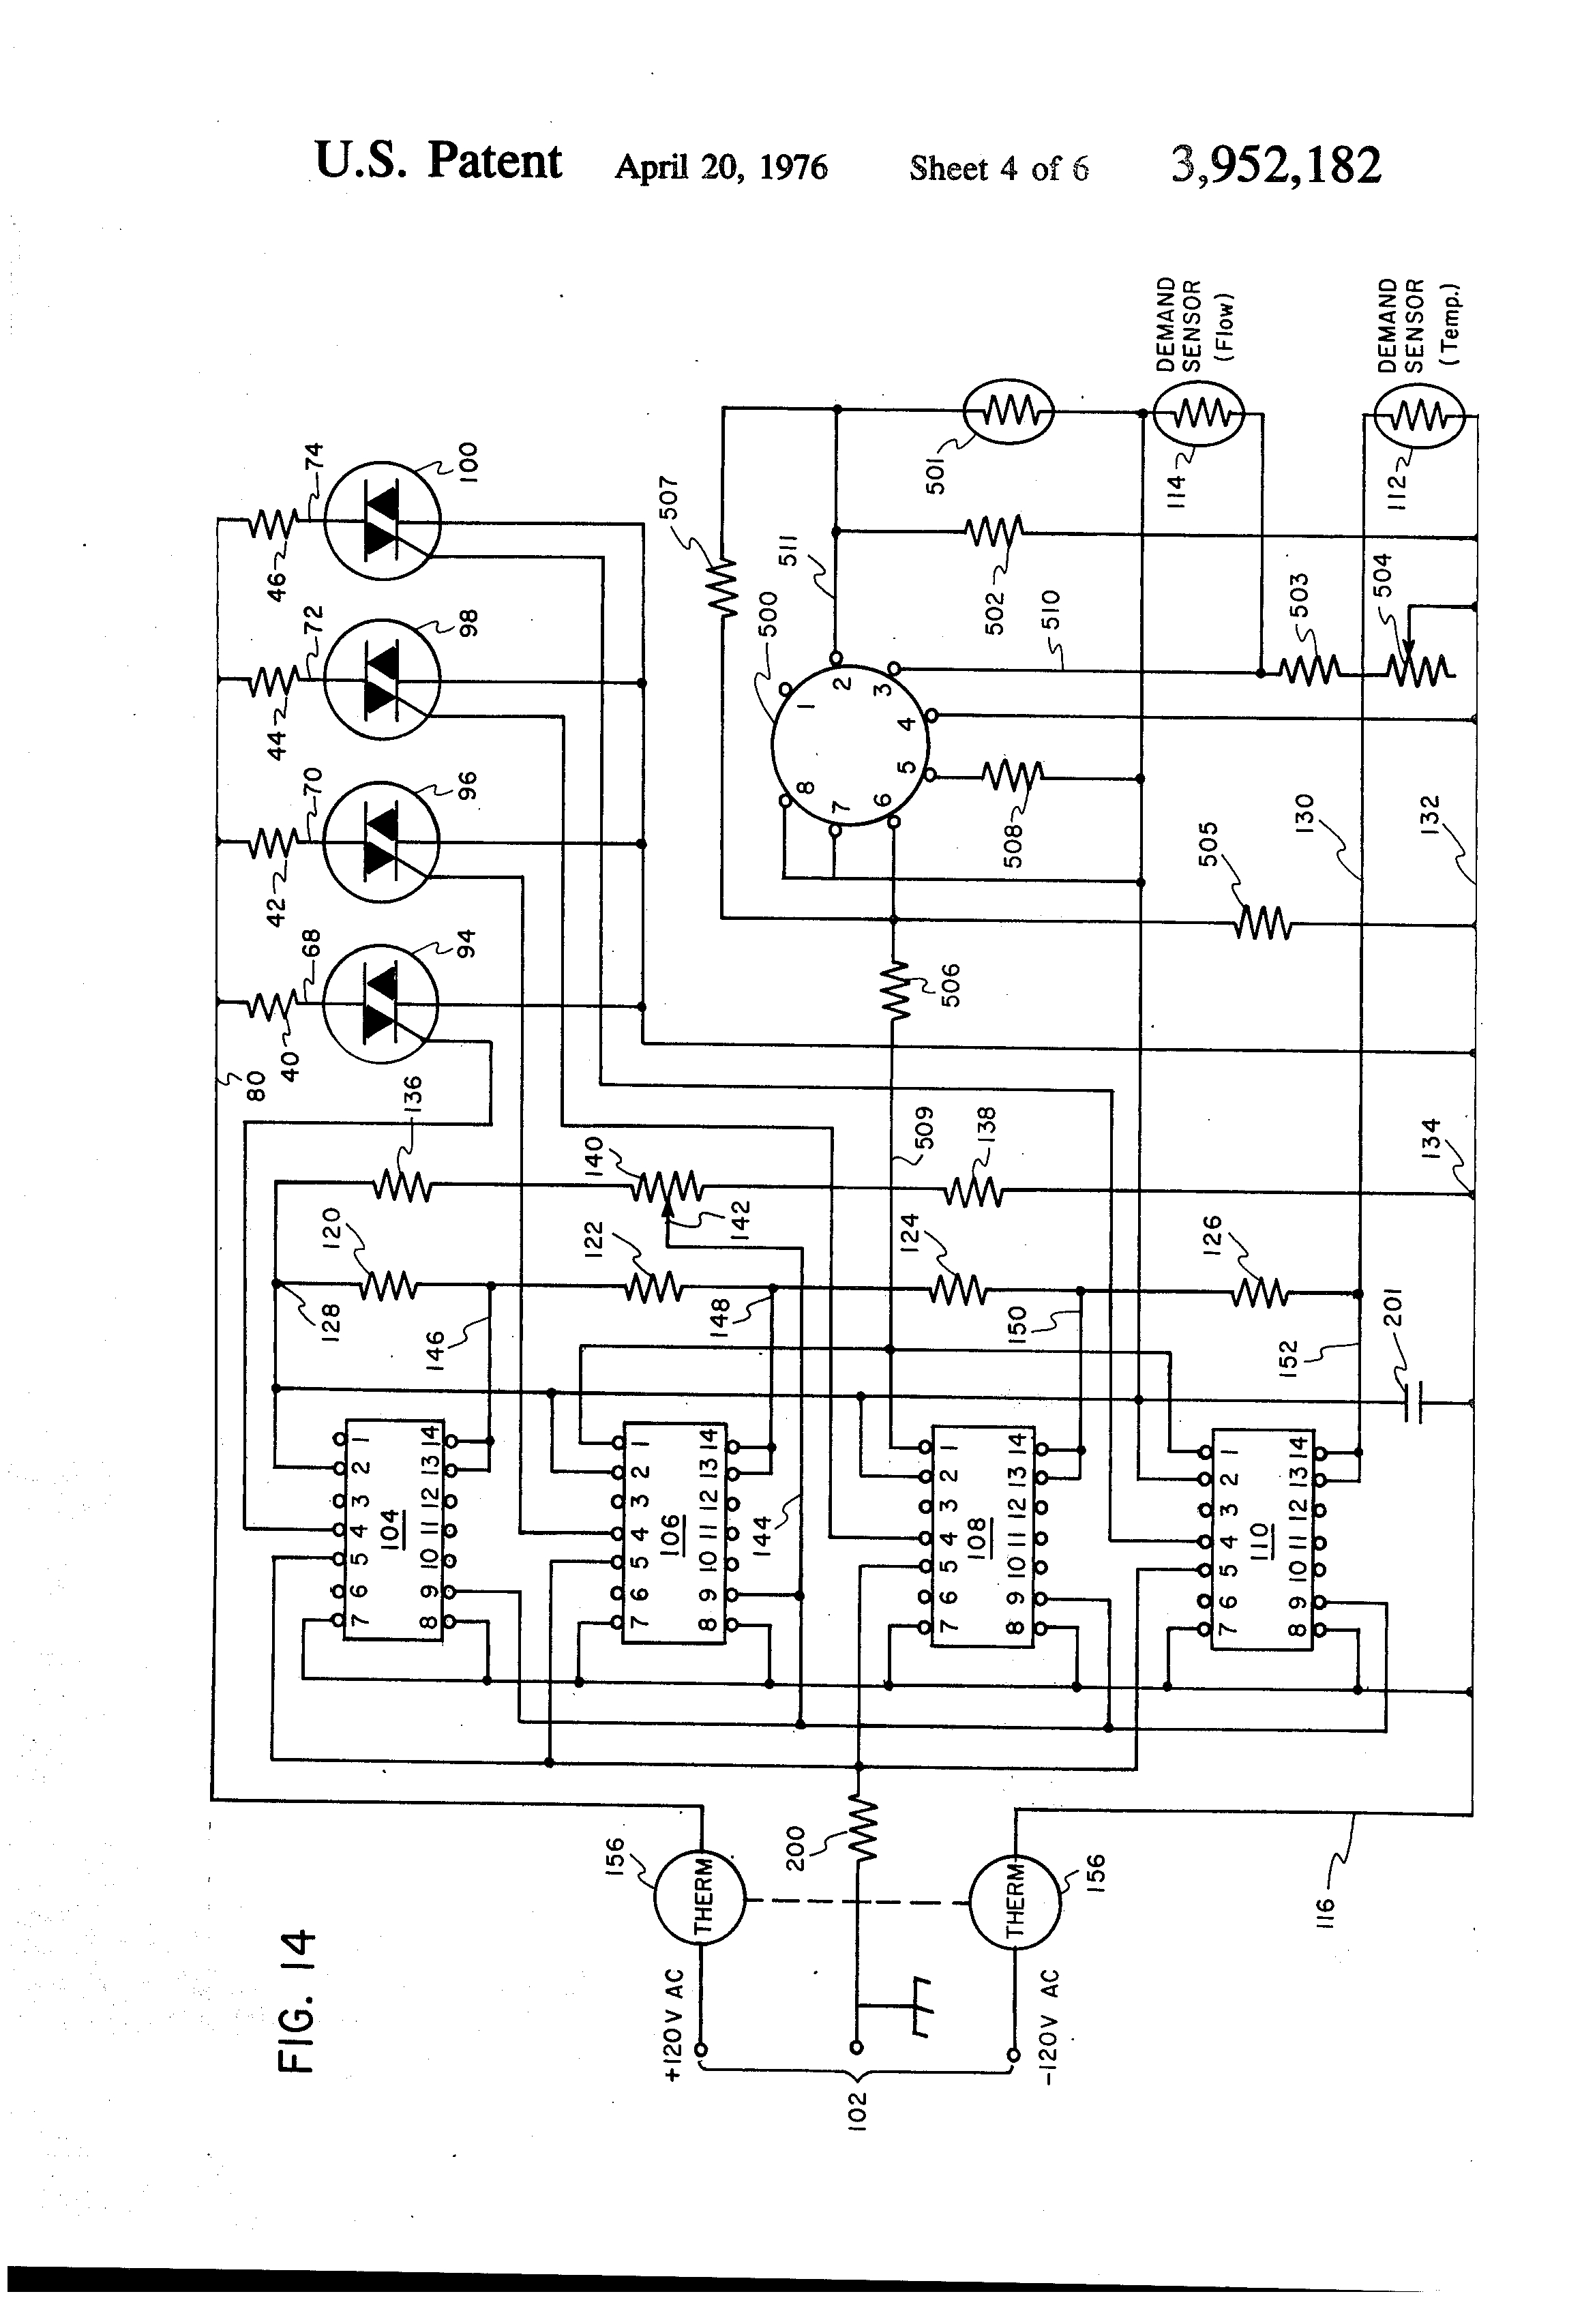 Hatco Wiring Diagrams | Schematic Diagram on lang wiring diagram, jackson wiring diagram, kitchenaid wiring diagram, alto shaam wiring diagram, kolpak wiring diagram, general electric wiring diagram, viking wiring diagram, traulsen wiring diagram, panasonic wiring diagram, fast wiring diagram, middleby marshall wiring diagram, amana wiring diagram, whirlpool wiring diagram, hobart wiring diagram, merco wiring diagram, electrolux wiring diagram, beverage air wiring diagram, metro wiring diagram, fisher wiring diagram, star wiring diagram,